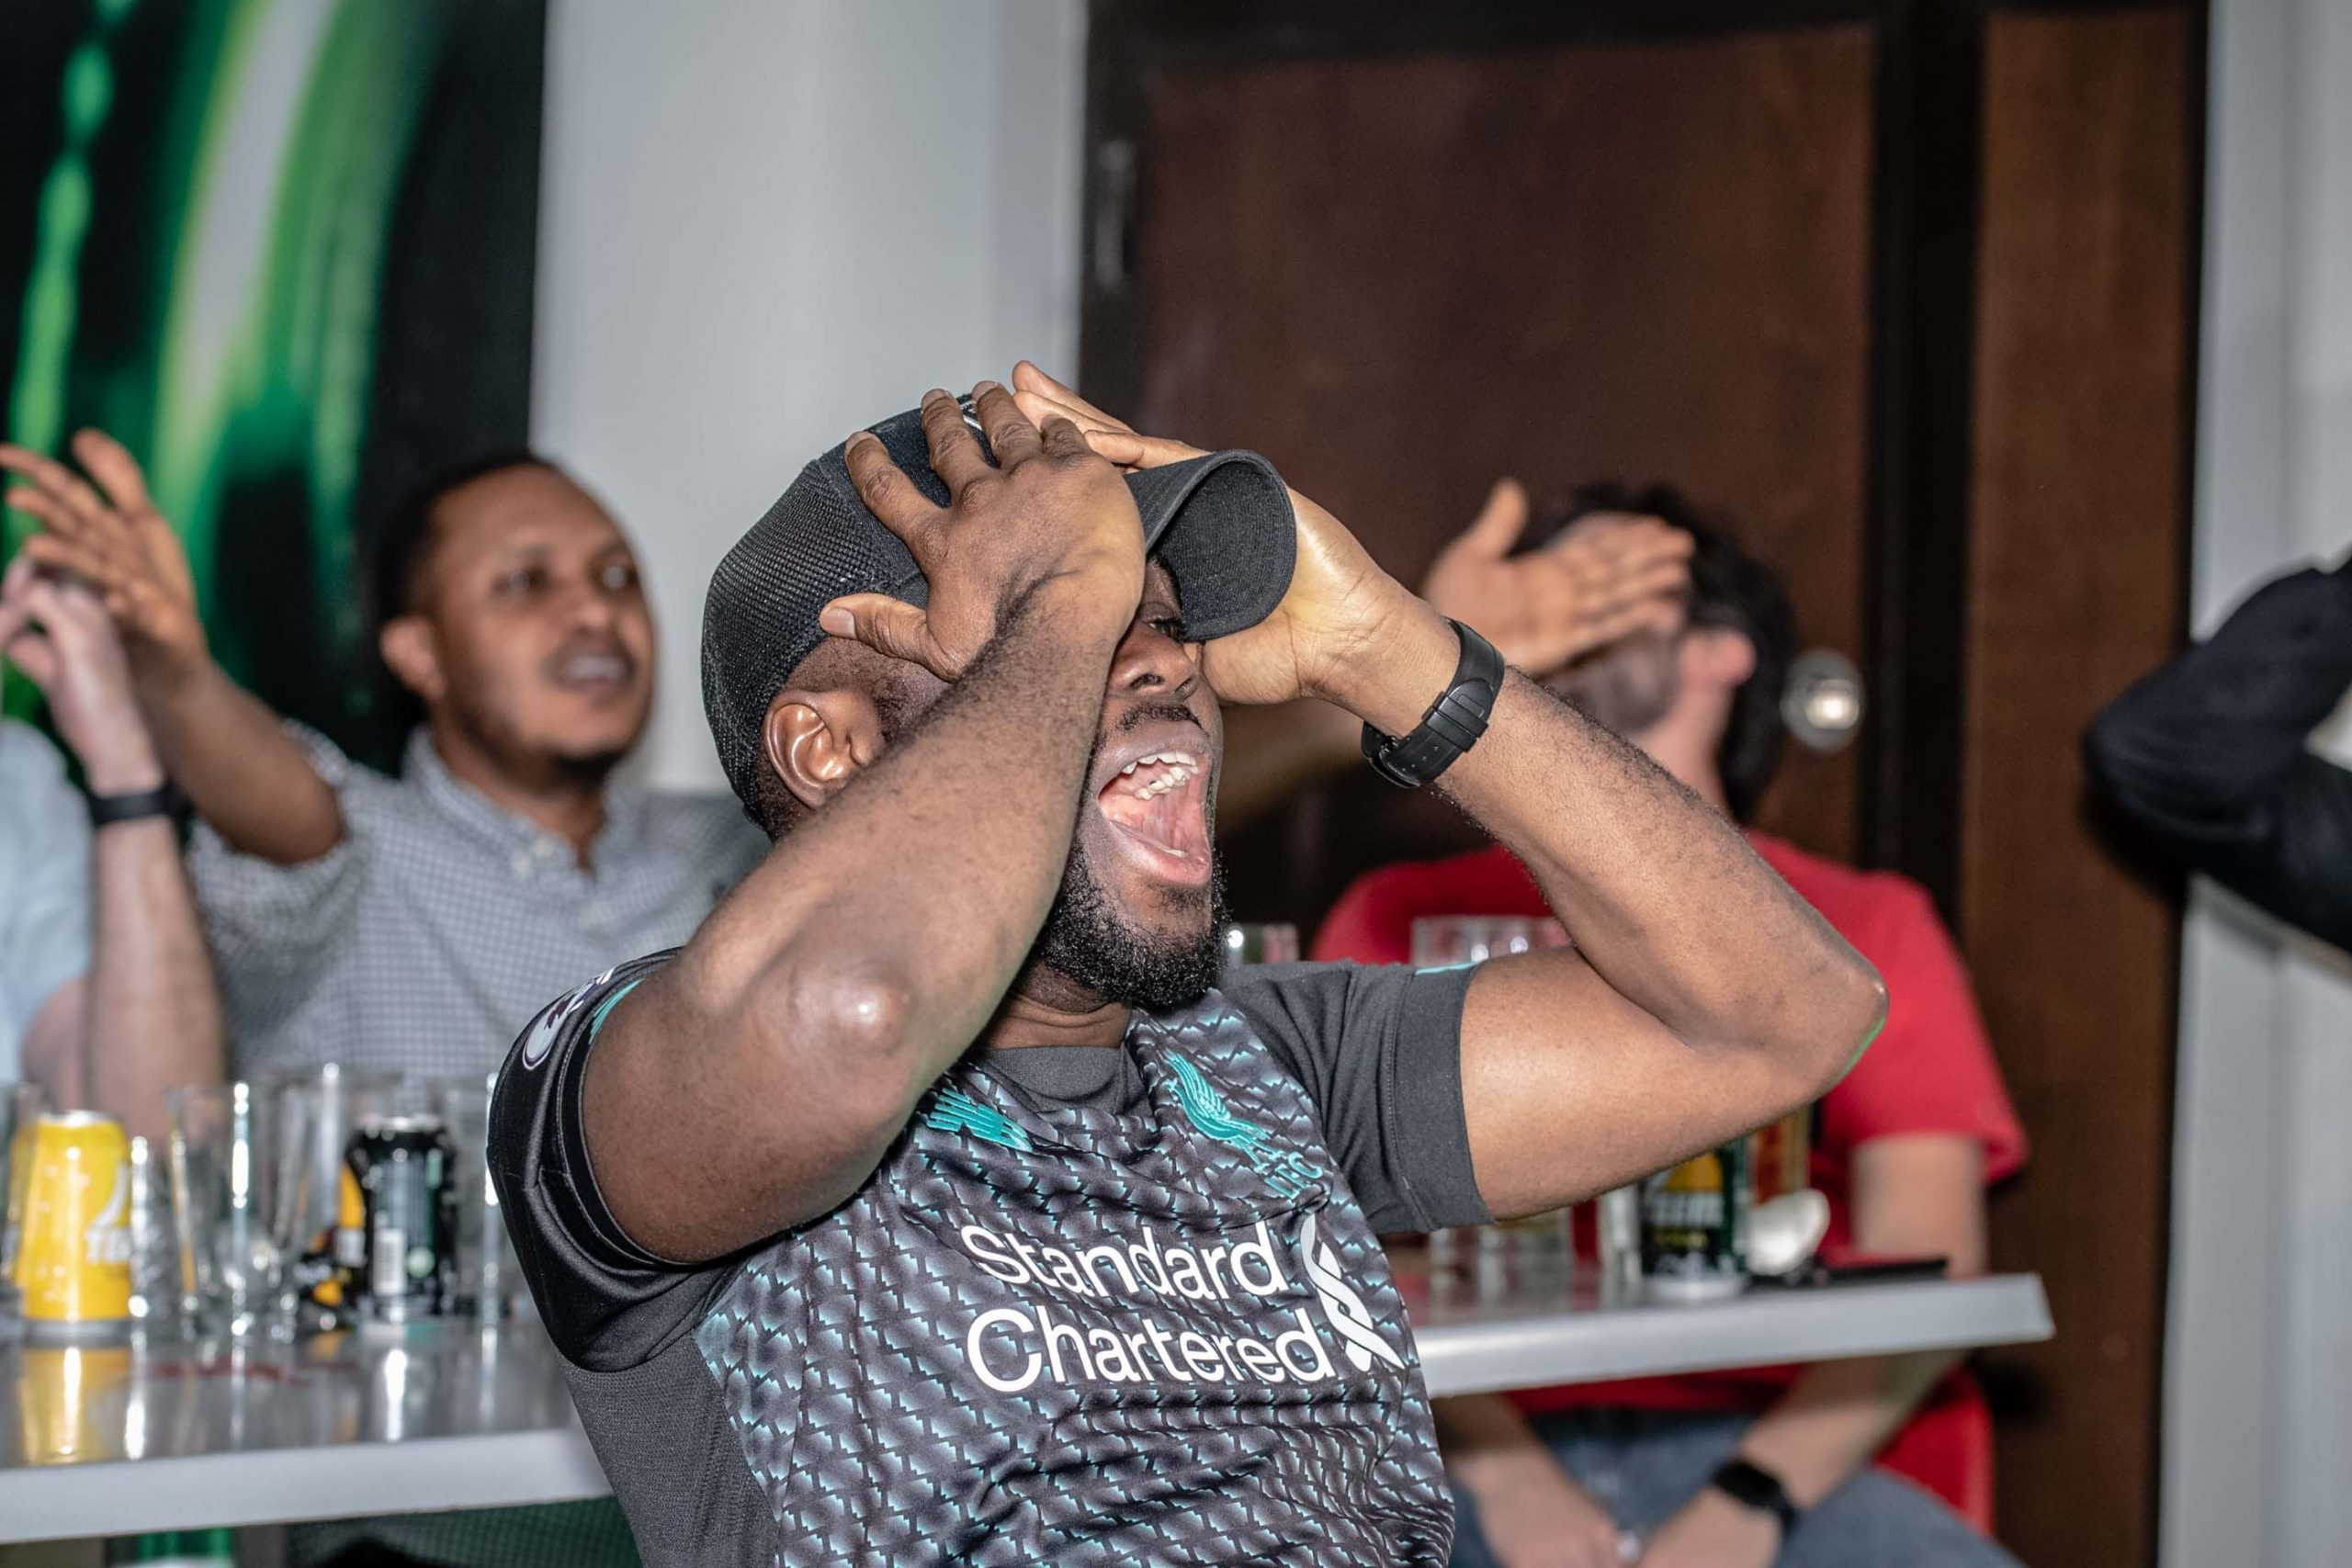 Football Fans Treated To Amazing Night Of Football At The Heineken House